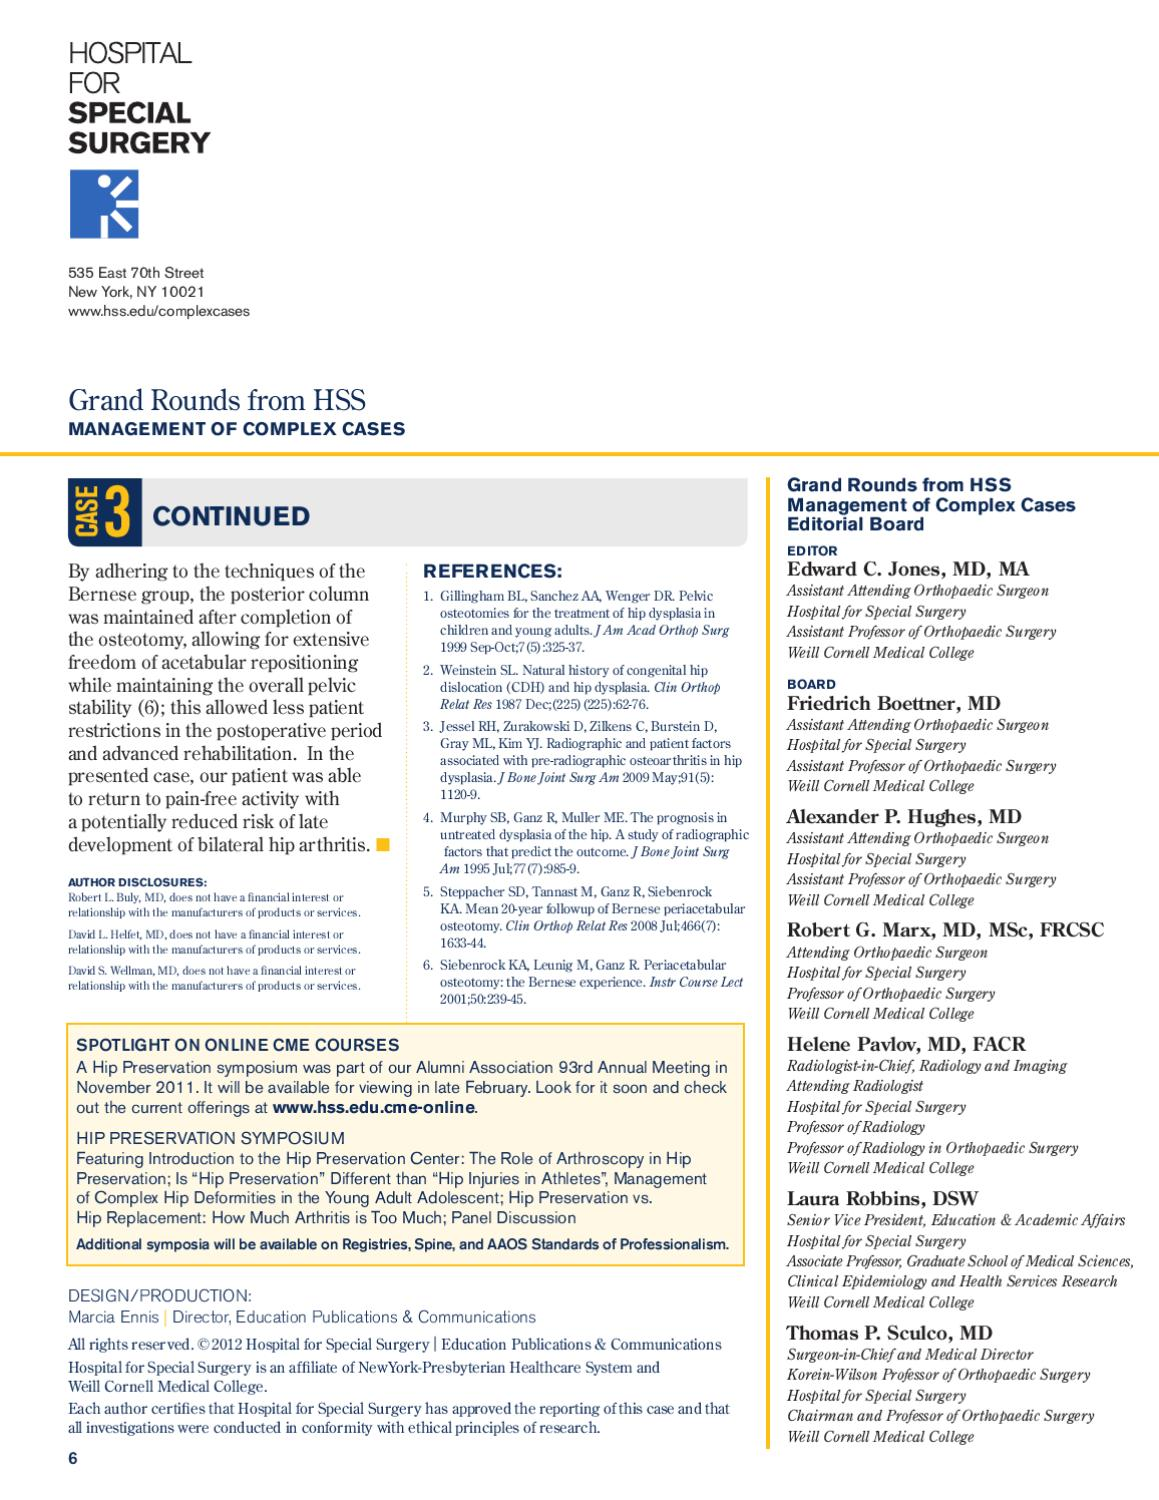 Grand Rounds from HSS - Management of Complex Cases : Winter